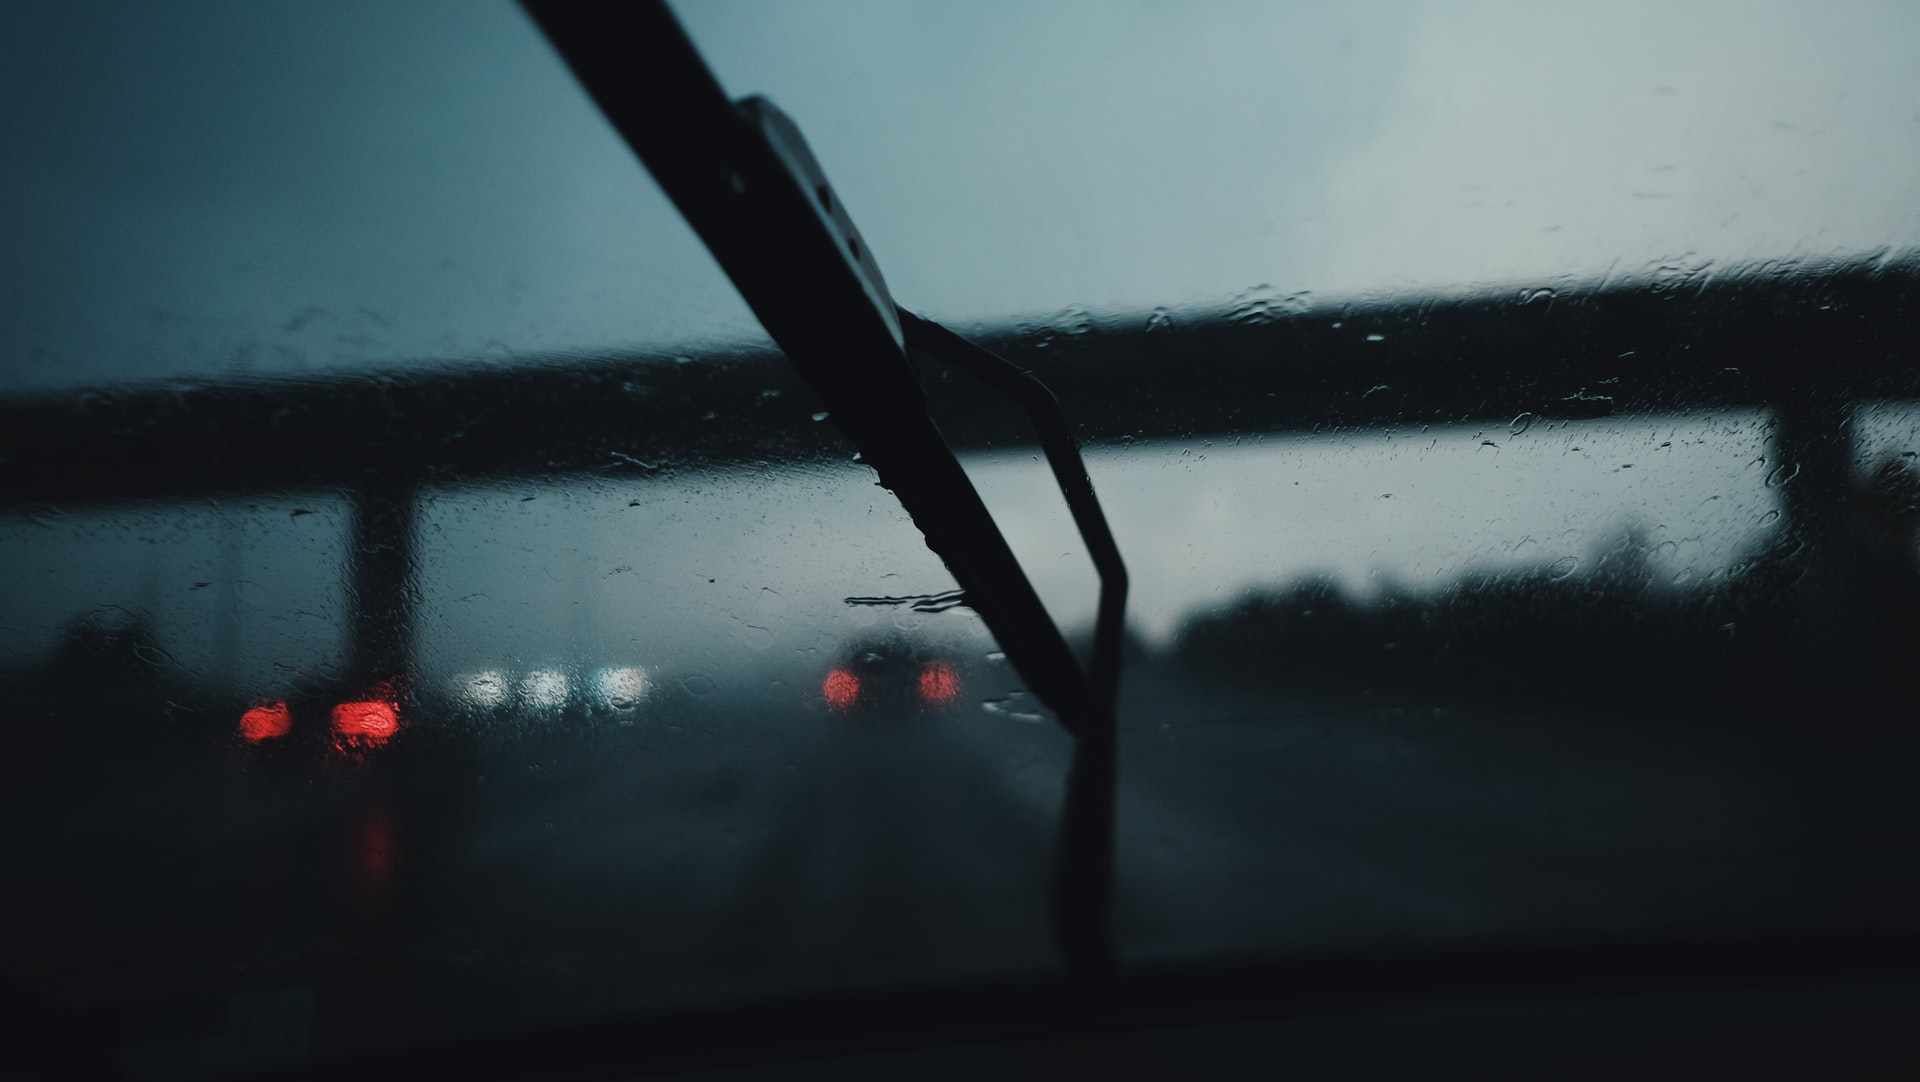 Windshield Wipers in winter